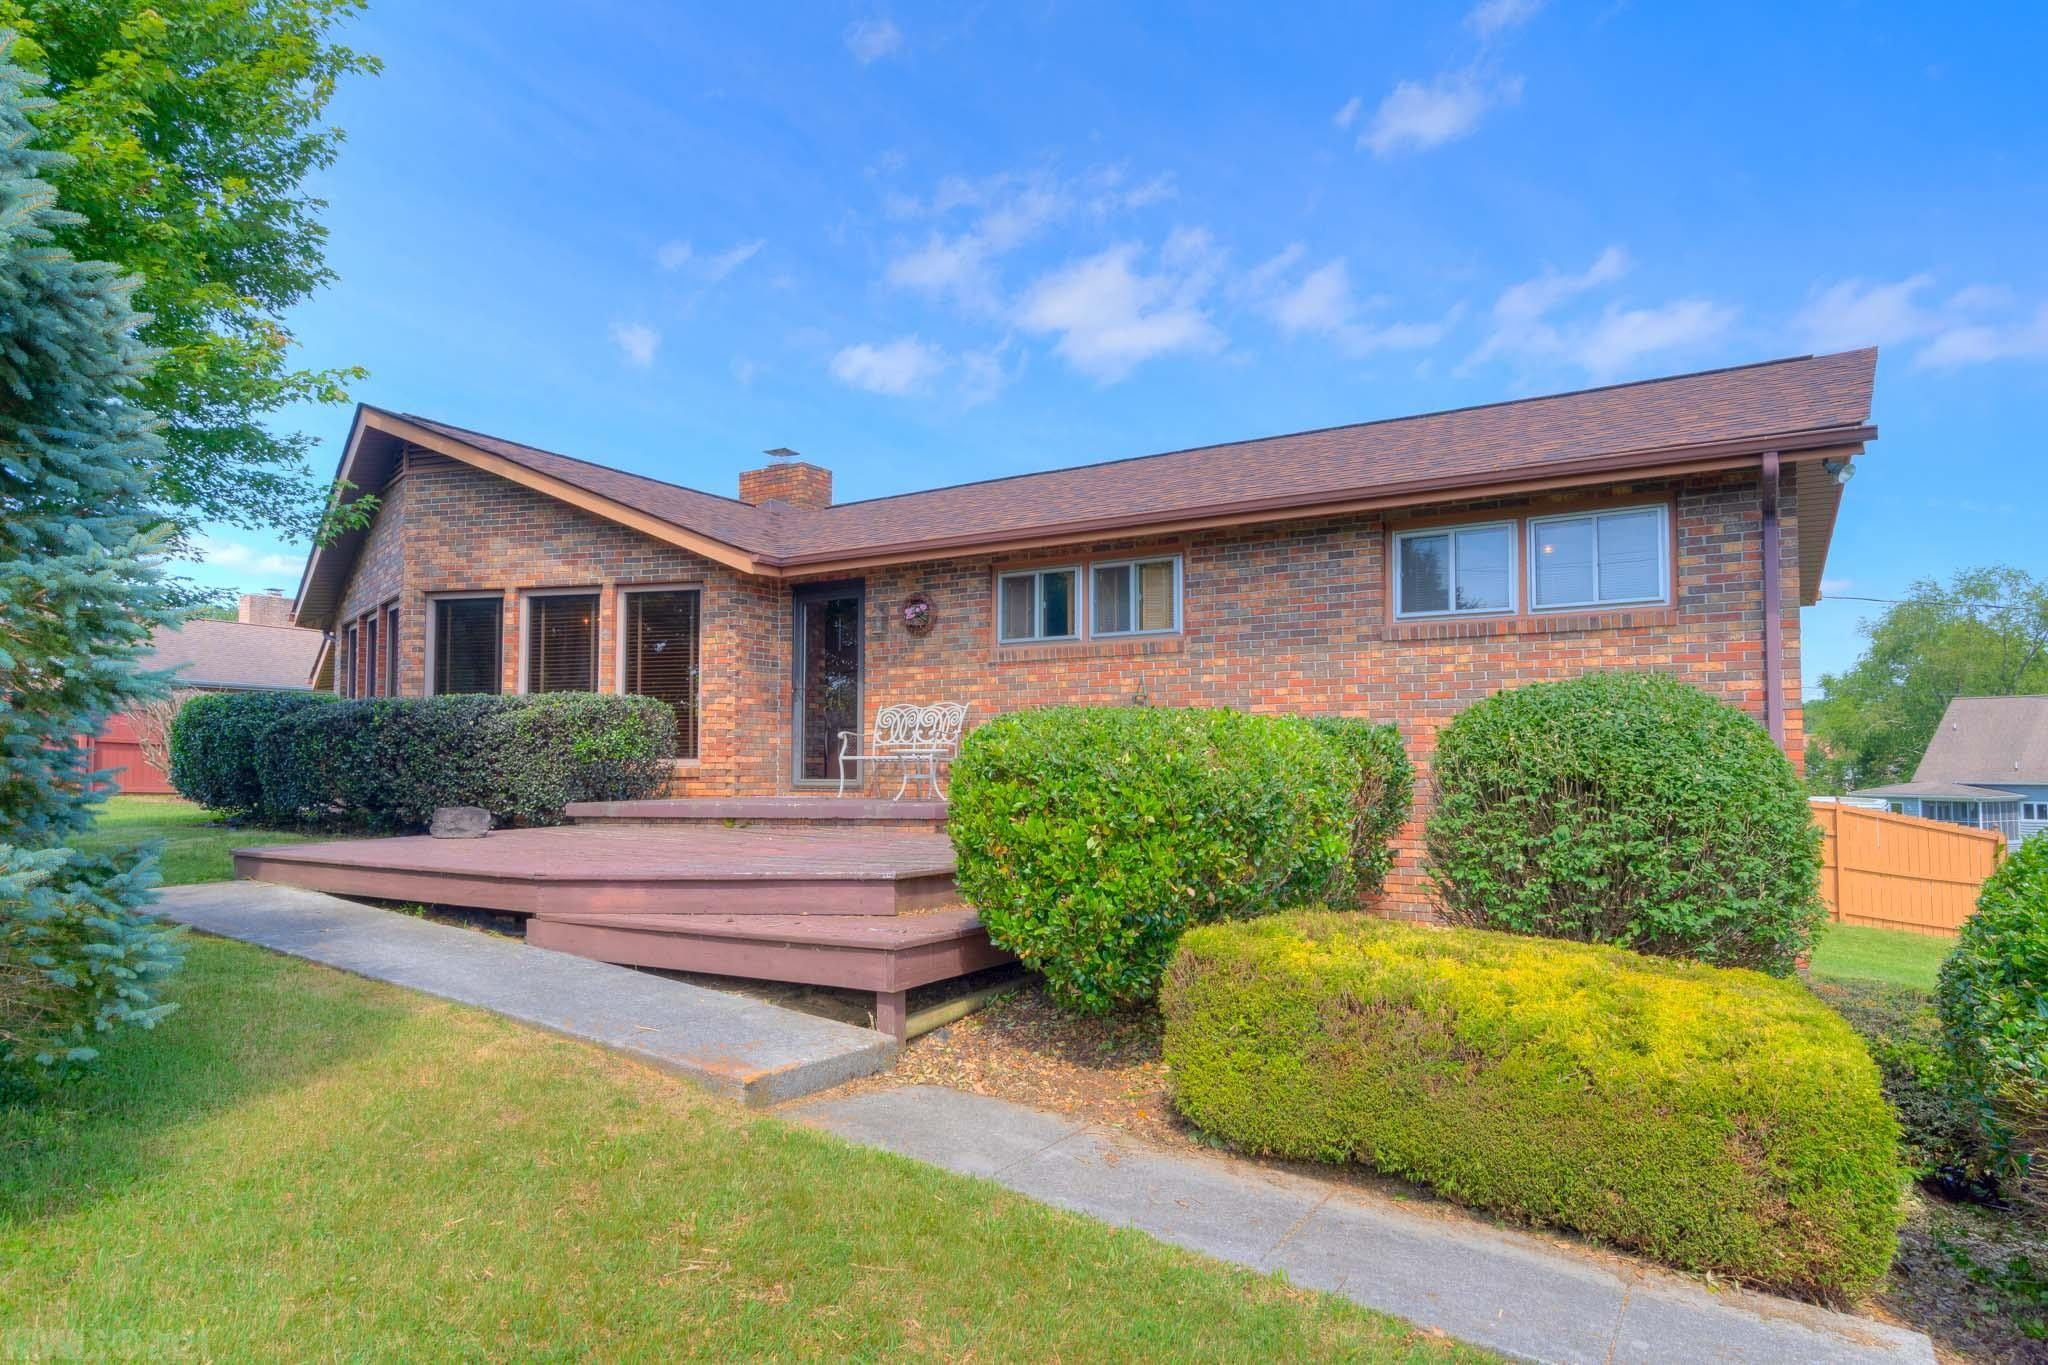 Located just minutes off the I-81 exit for Claytor Lake State Park in the popular Dunkards Bottom-Lakeshore subdivision, this home has a community dock just across the street and a community boat launch at the end of the street. This amazing home has been in the same family for over 40 years! Situated on a corner lot this brick rancher has much to offer. The open floor plan lends itself to versatility with lots of natural lighting. Oak parquet flooring, a large masonry fireplace, main level master suite complete with a walk-in closet, a private bath and main level laundry area allows for easy living. The basement has room for expansion and a well-sized two car garage. Enjoy lake living without the cost of owning and maintaining waterfront property! Family and golf cart friendly!